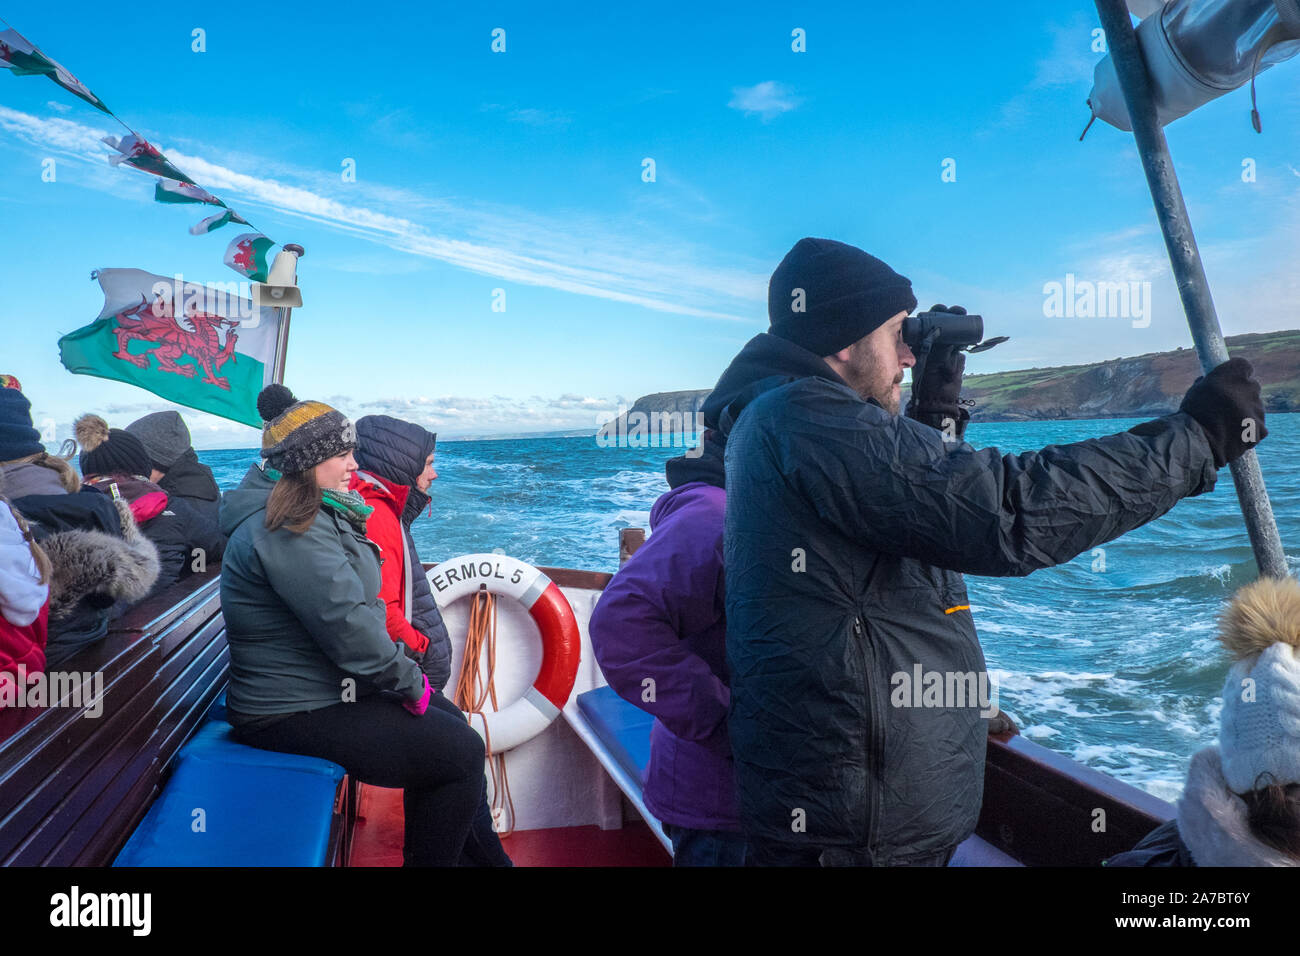 Dolphin watching,boat,Cardigan Bay,NewQuay,New Quay,Newquay,a,popular,fishing,coastal,village,town,popular,for,boat,trips,West Wales,Wales,Welsh,UK,GB Stock Photo